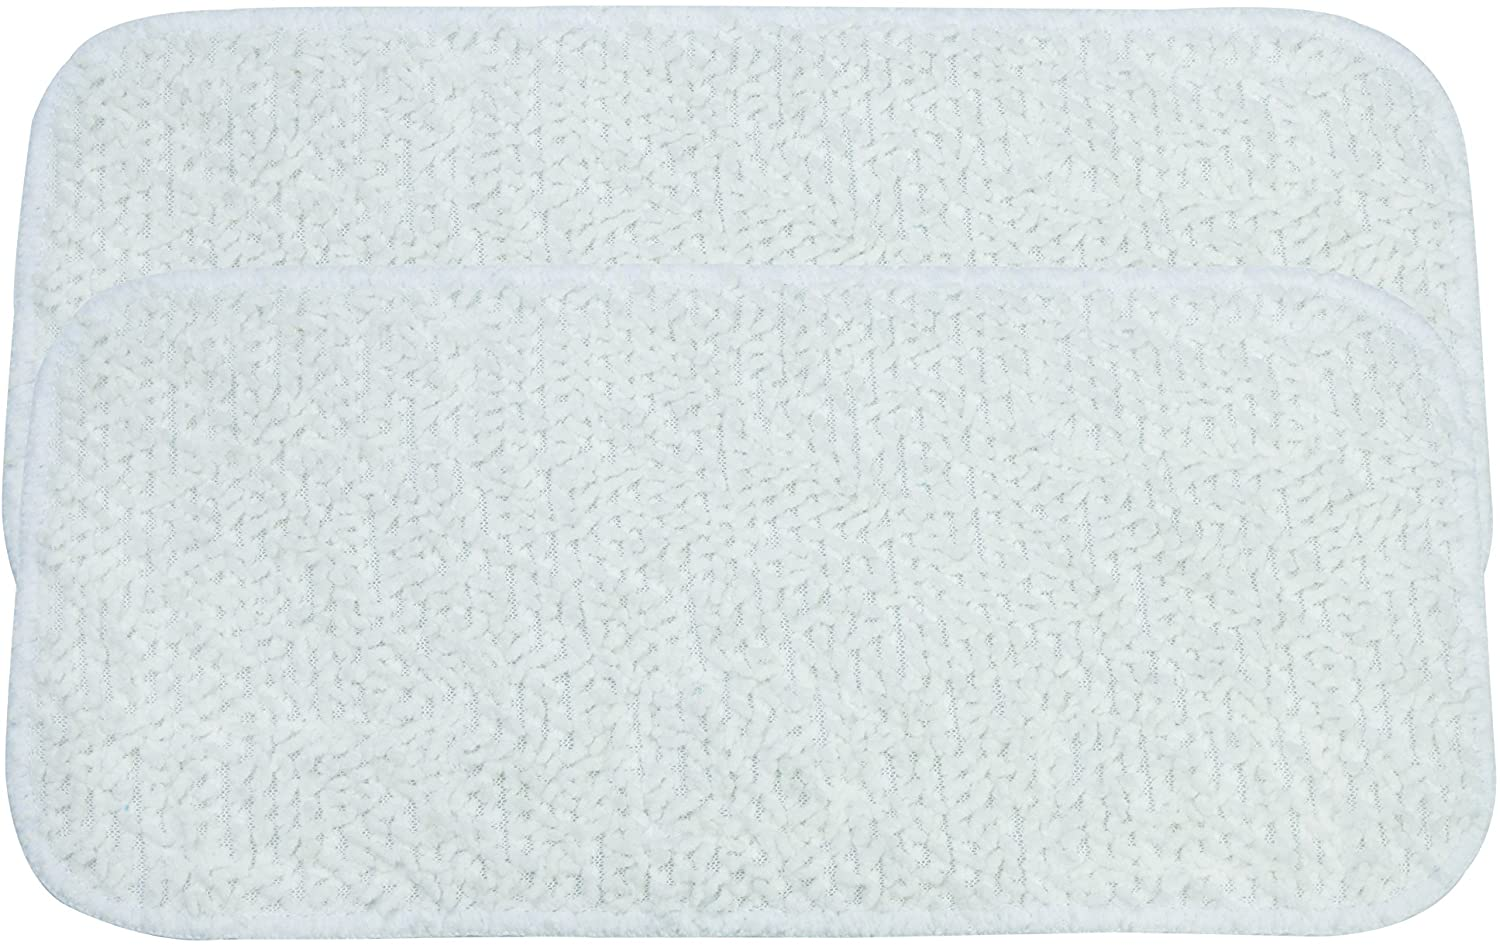 LTWHOME Microfiber Cleaning Pads Fit for Sienna Luna Steam Mop SSM-3006 (Pack of 2)